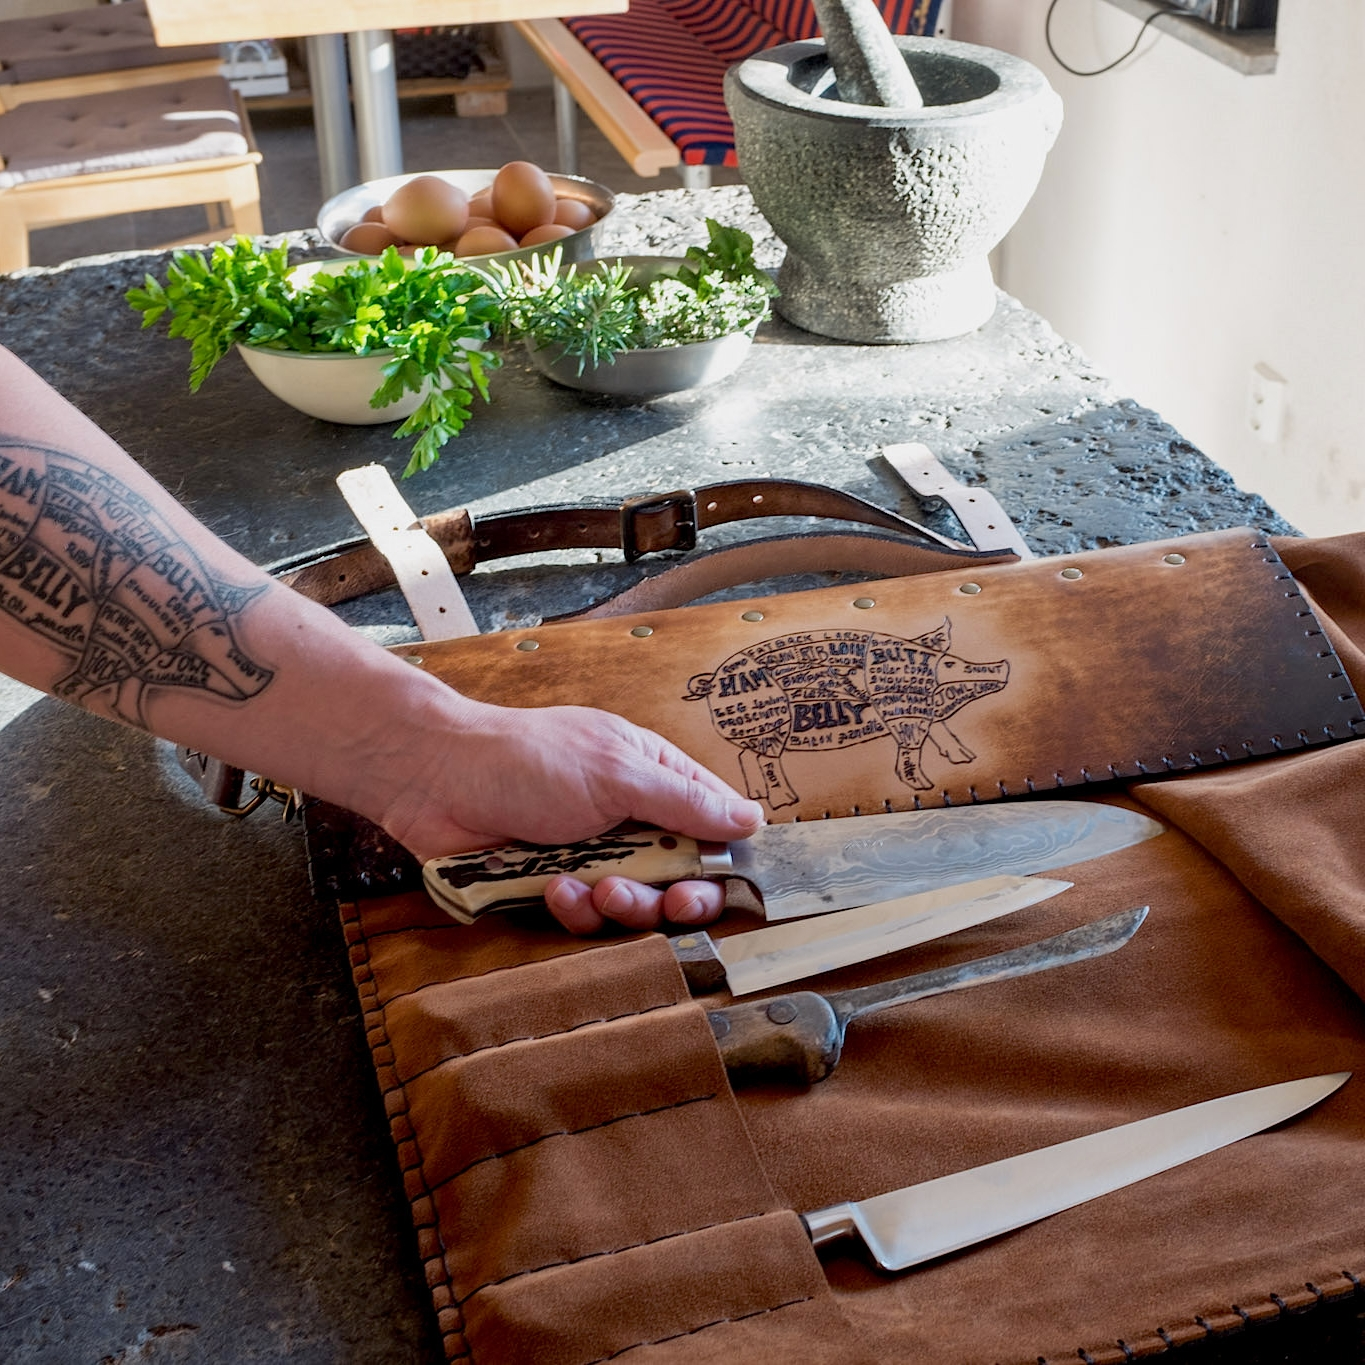 knife roll for chef with tattoo.jpg